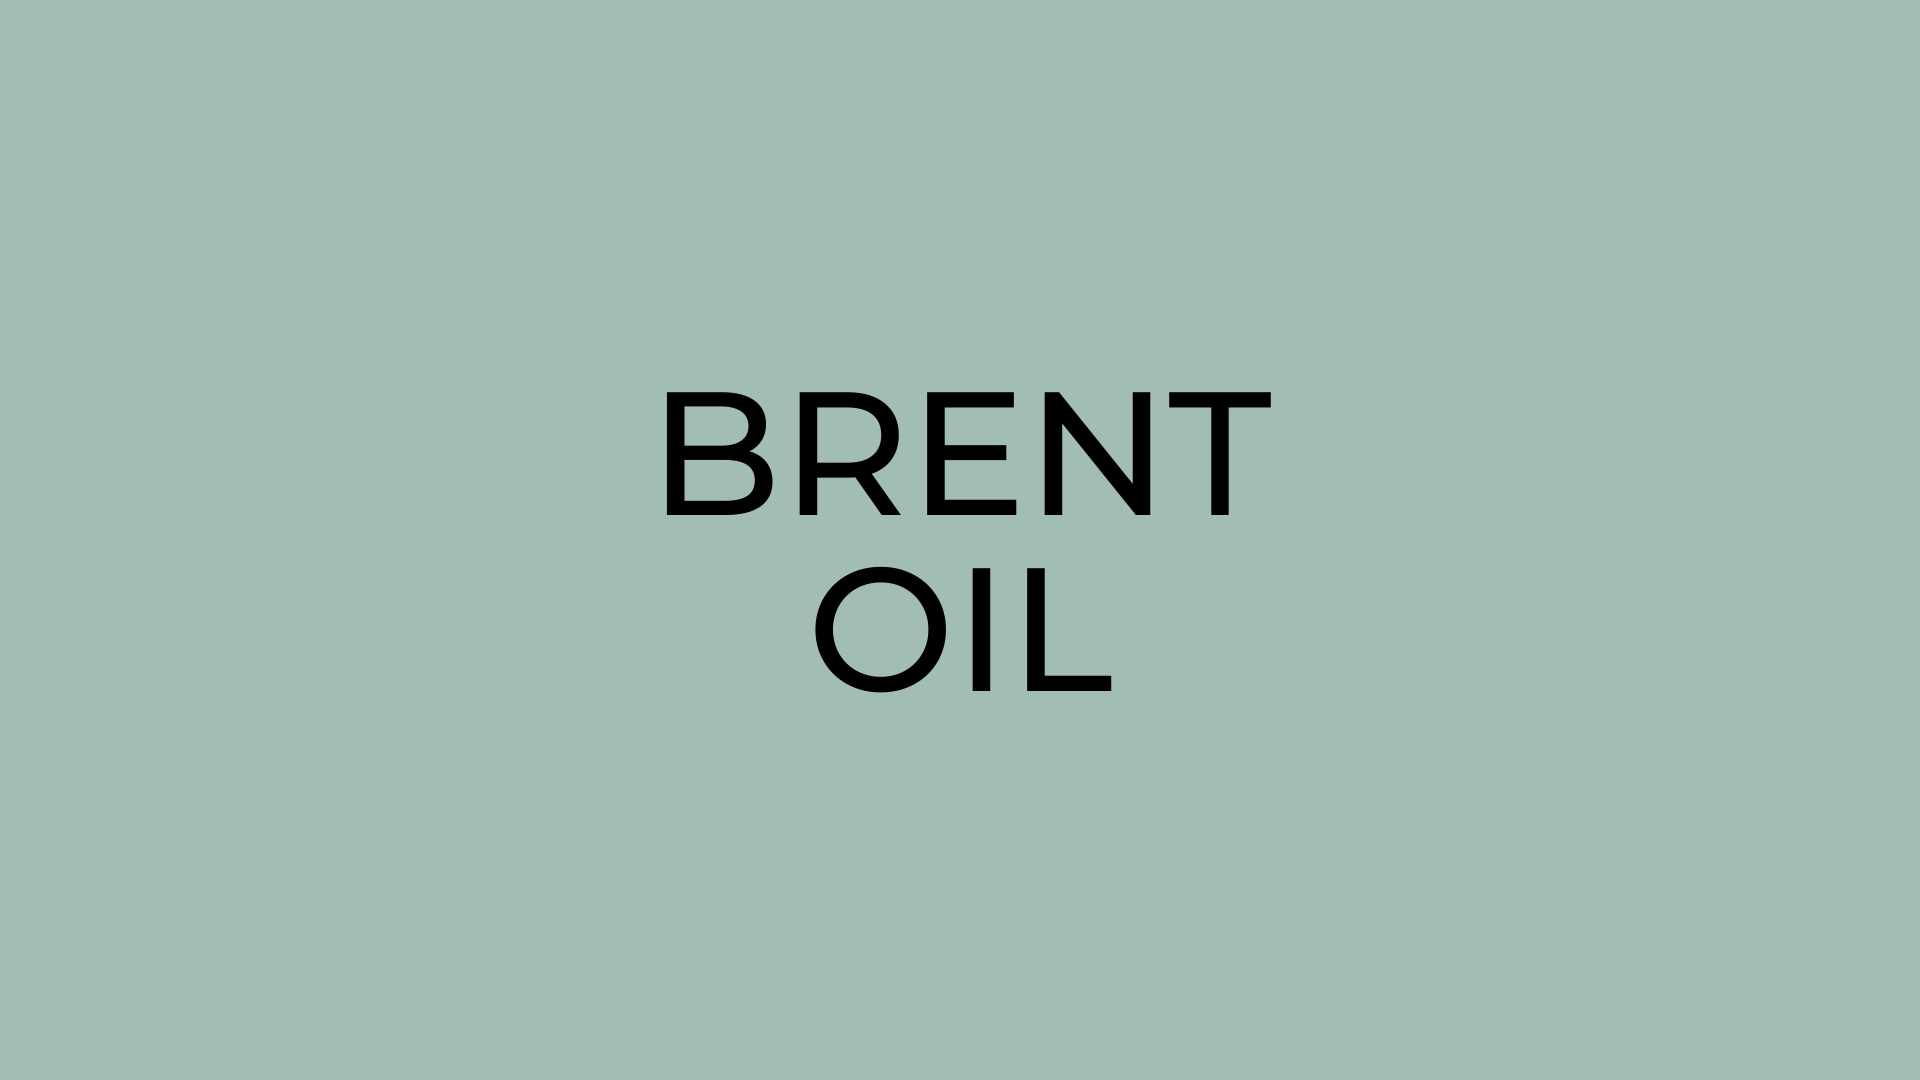 Brent crude oil price today